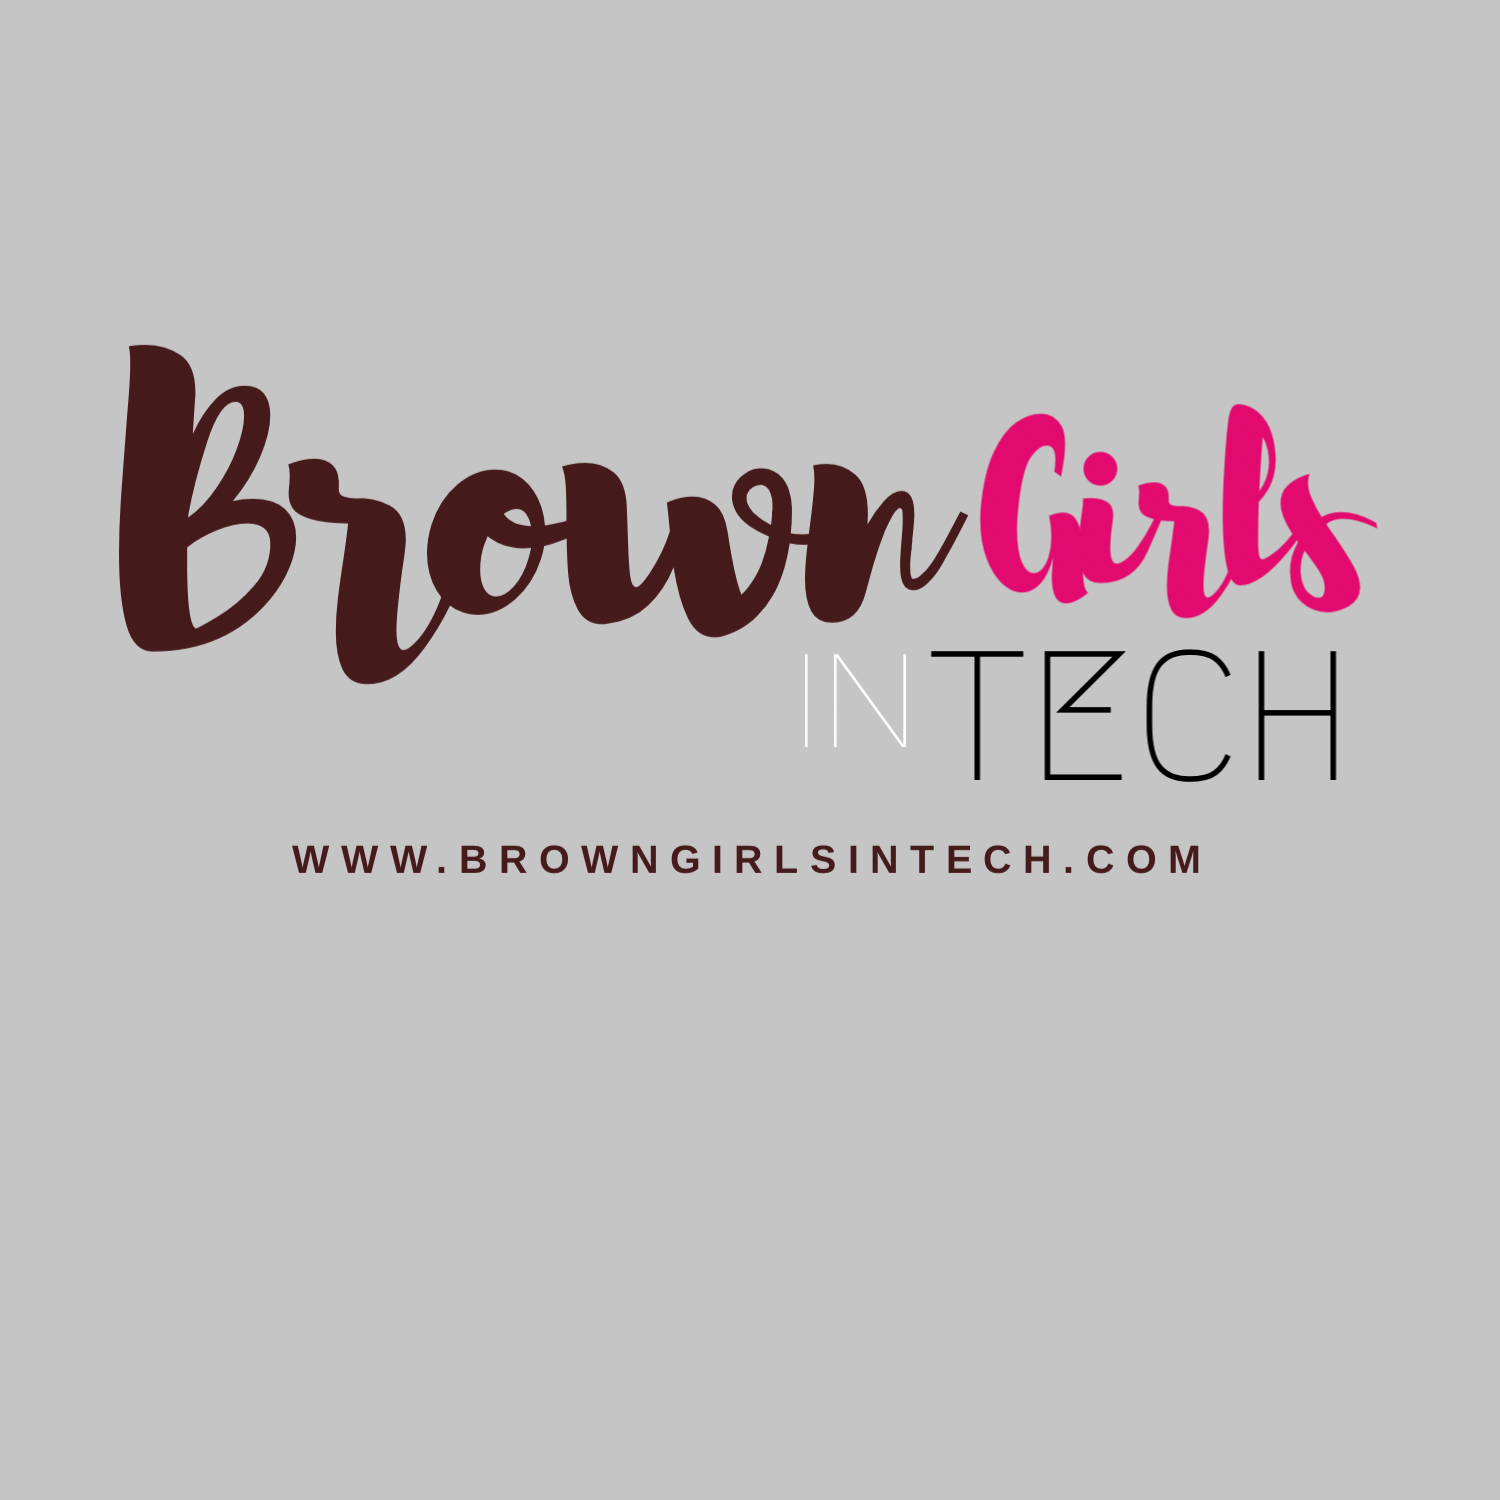 Brown Girls in Tech